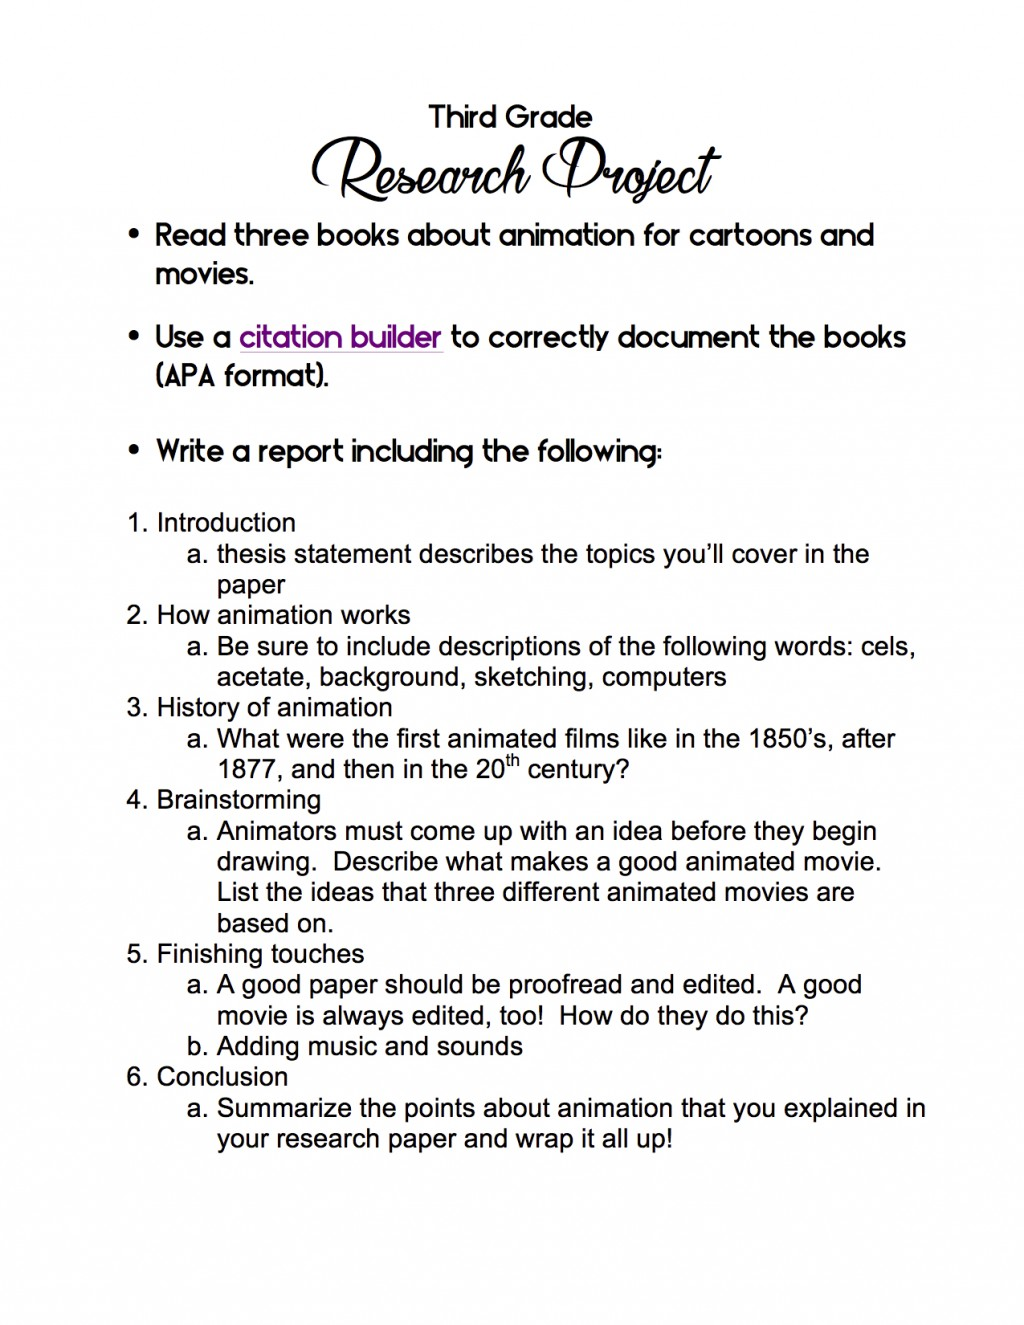 002 Research Paper Cancer Ideas 3rd Grade Shocking Breast Topic Large